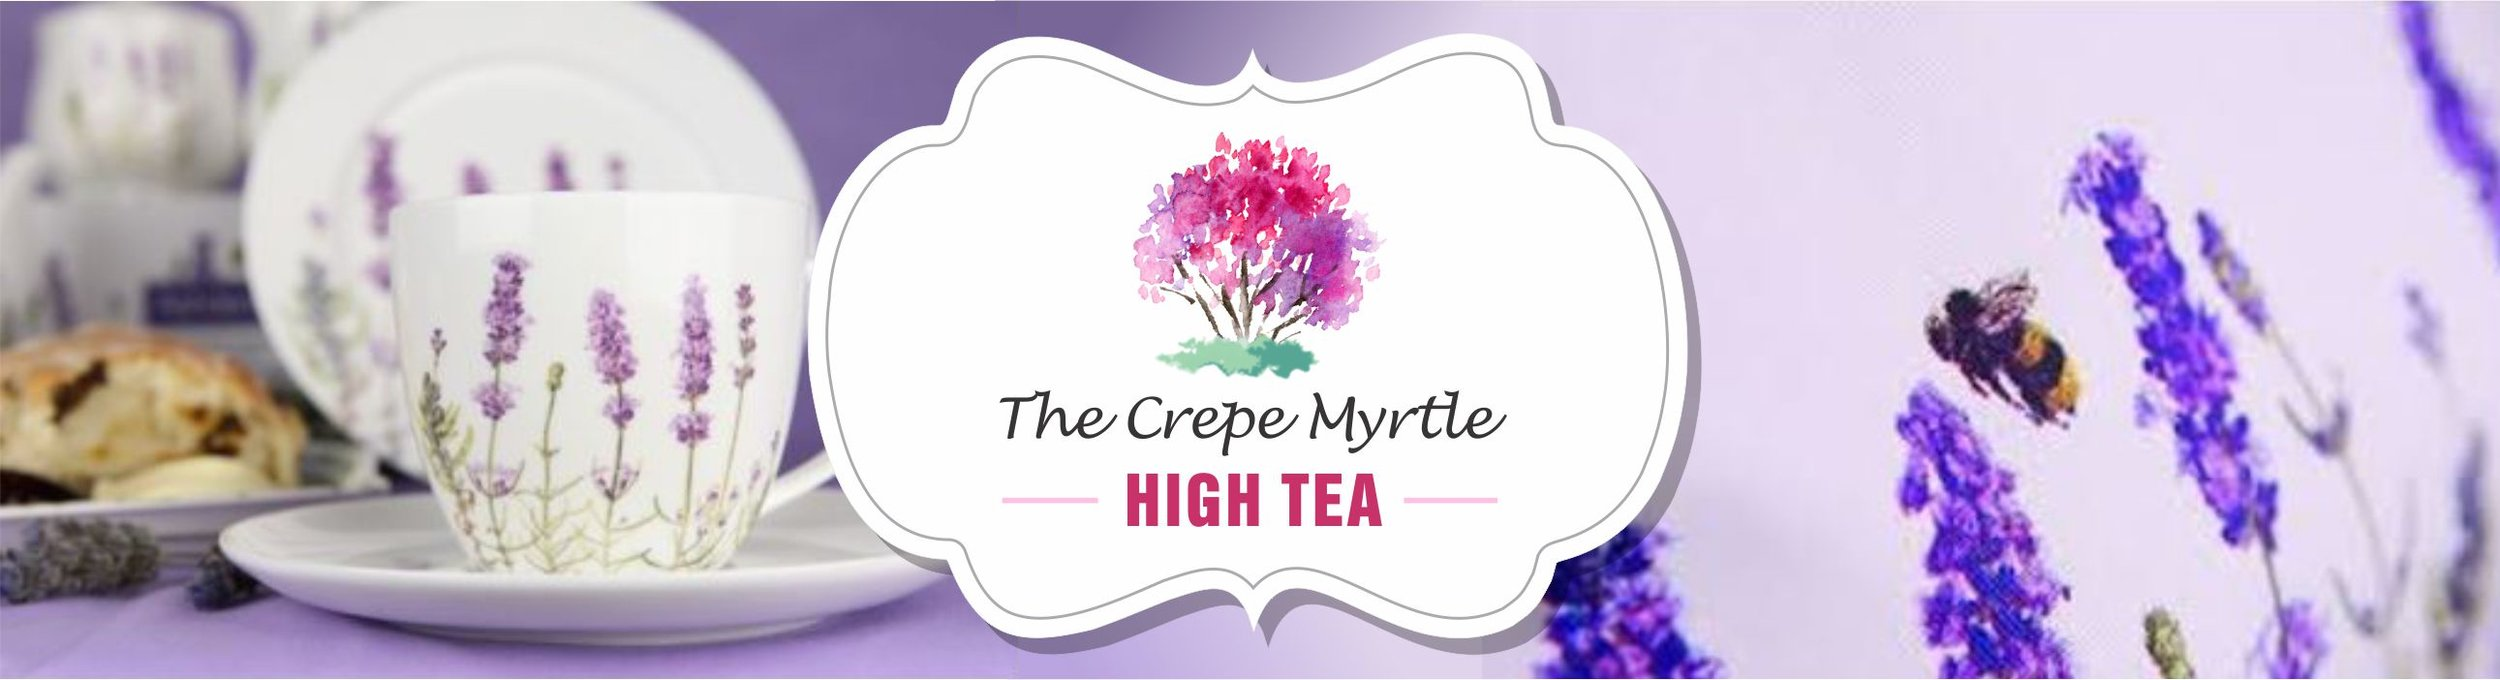 crepe myrtle tea and coffee rooms high tea.jpg